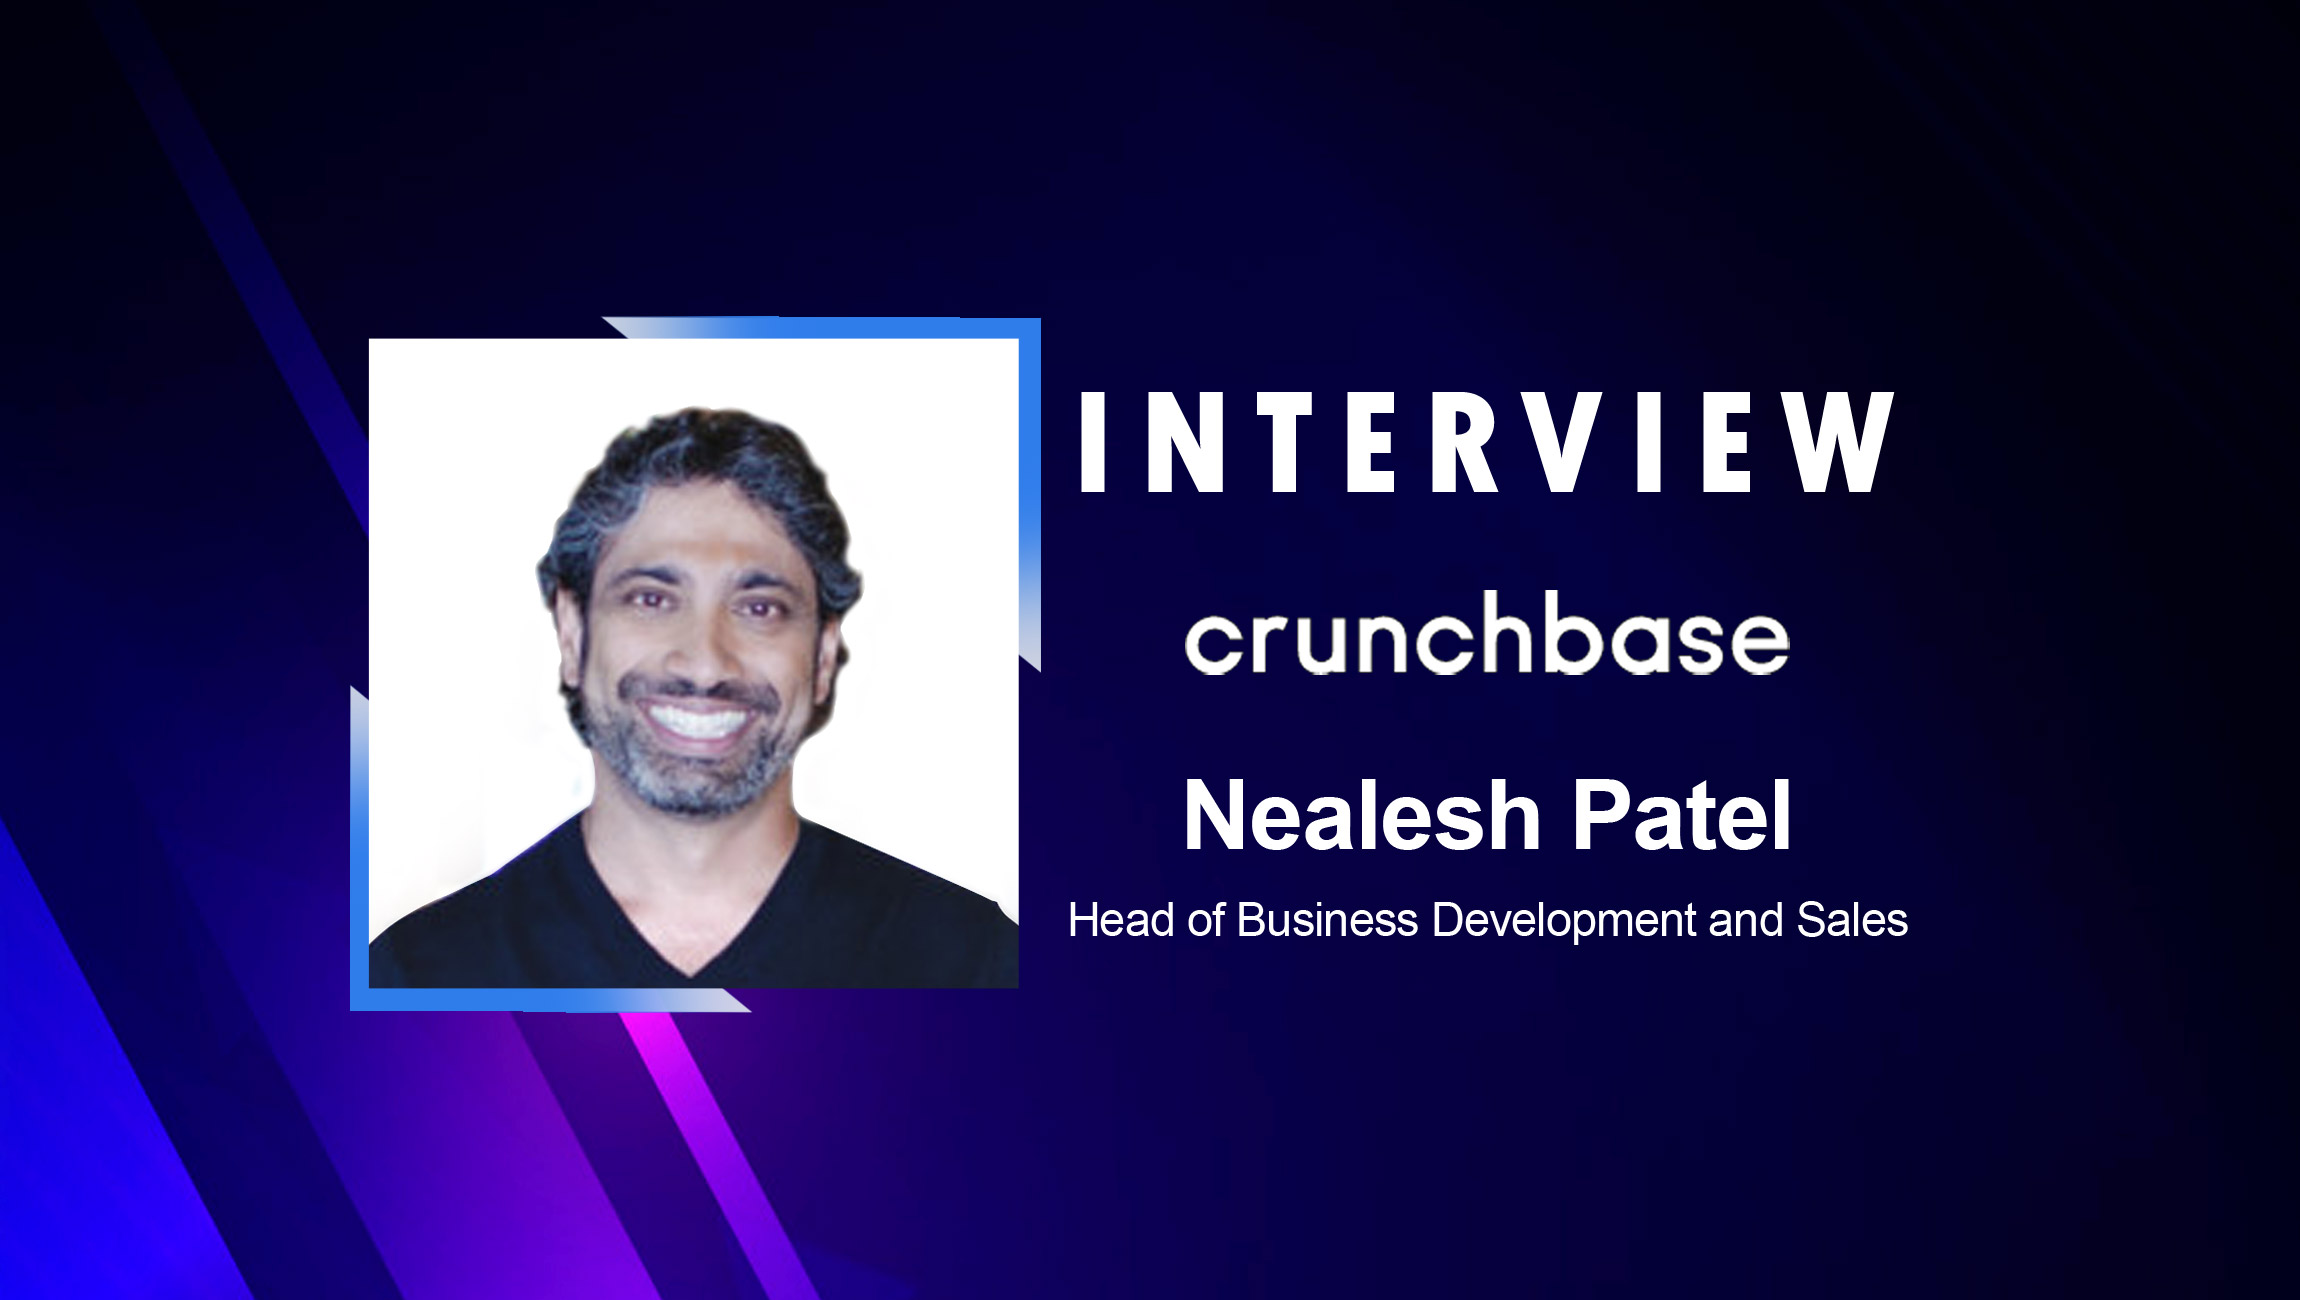 SalesTechStar Interview with Nealesh Patel, Head of Business Development and Sales at Crunchbase